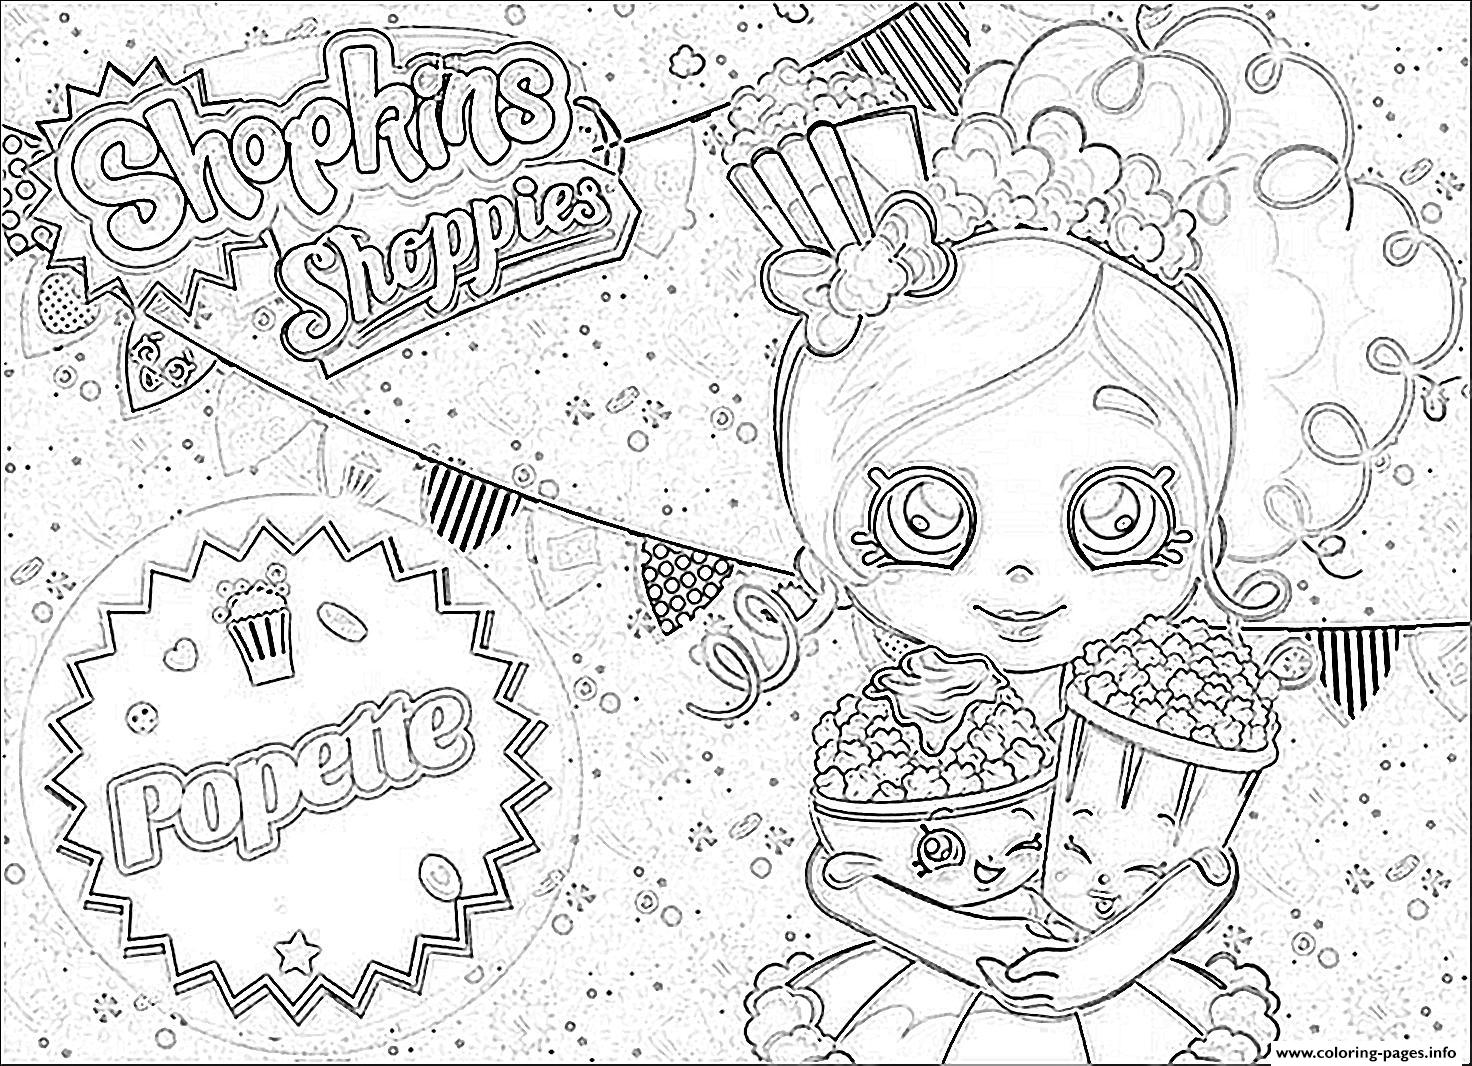 Shopkins Popette Official coloring pages